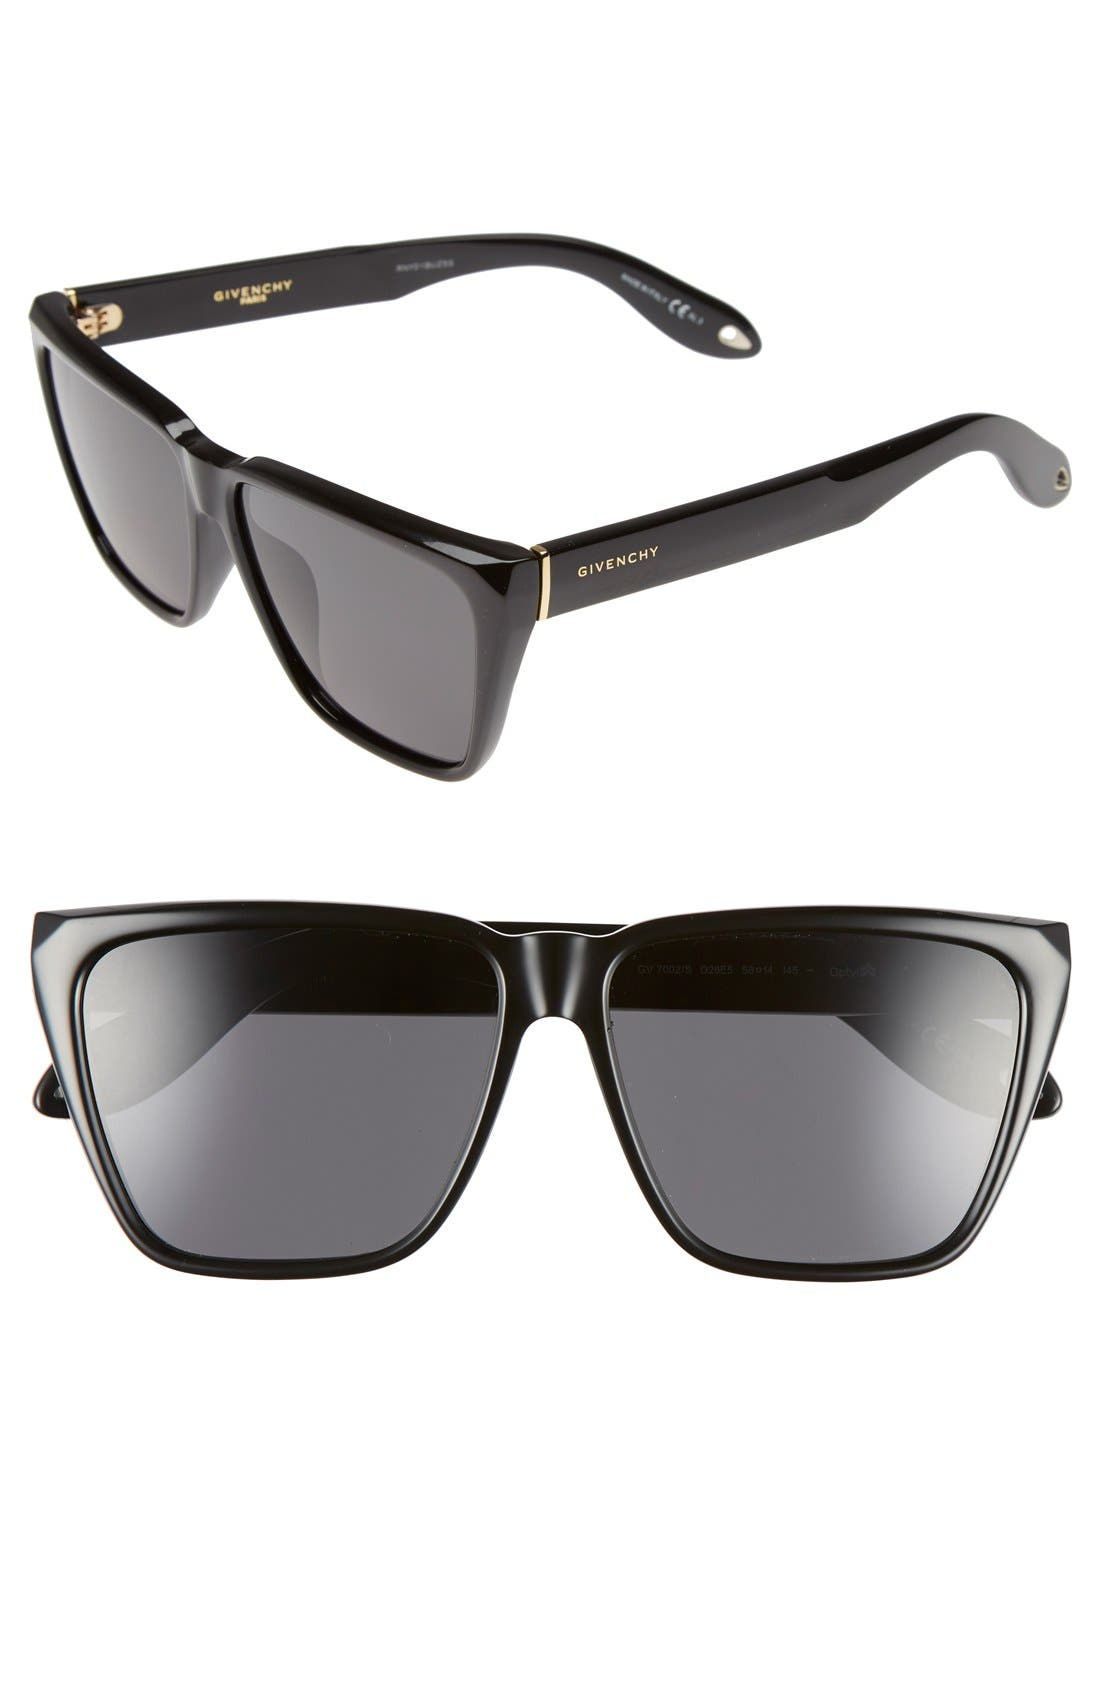 Main Image - Givenchy 58mm Flat Top Sunglasses